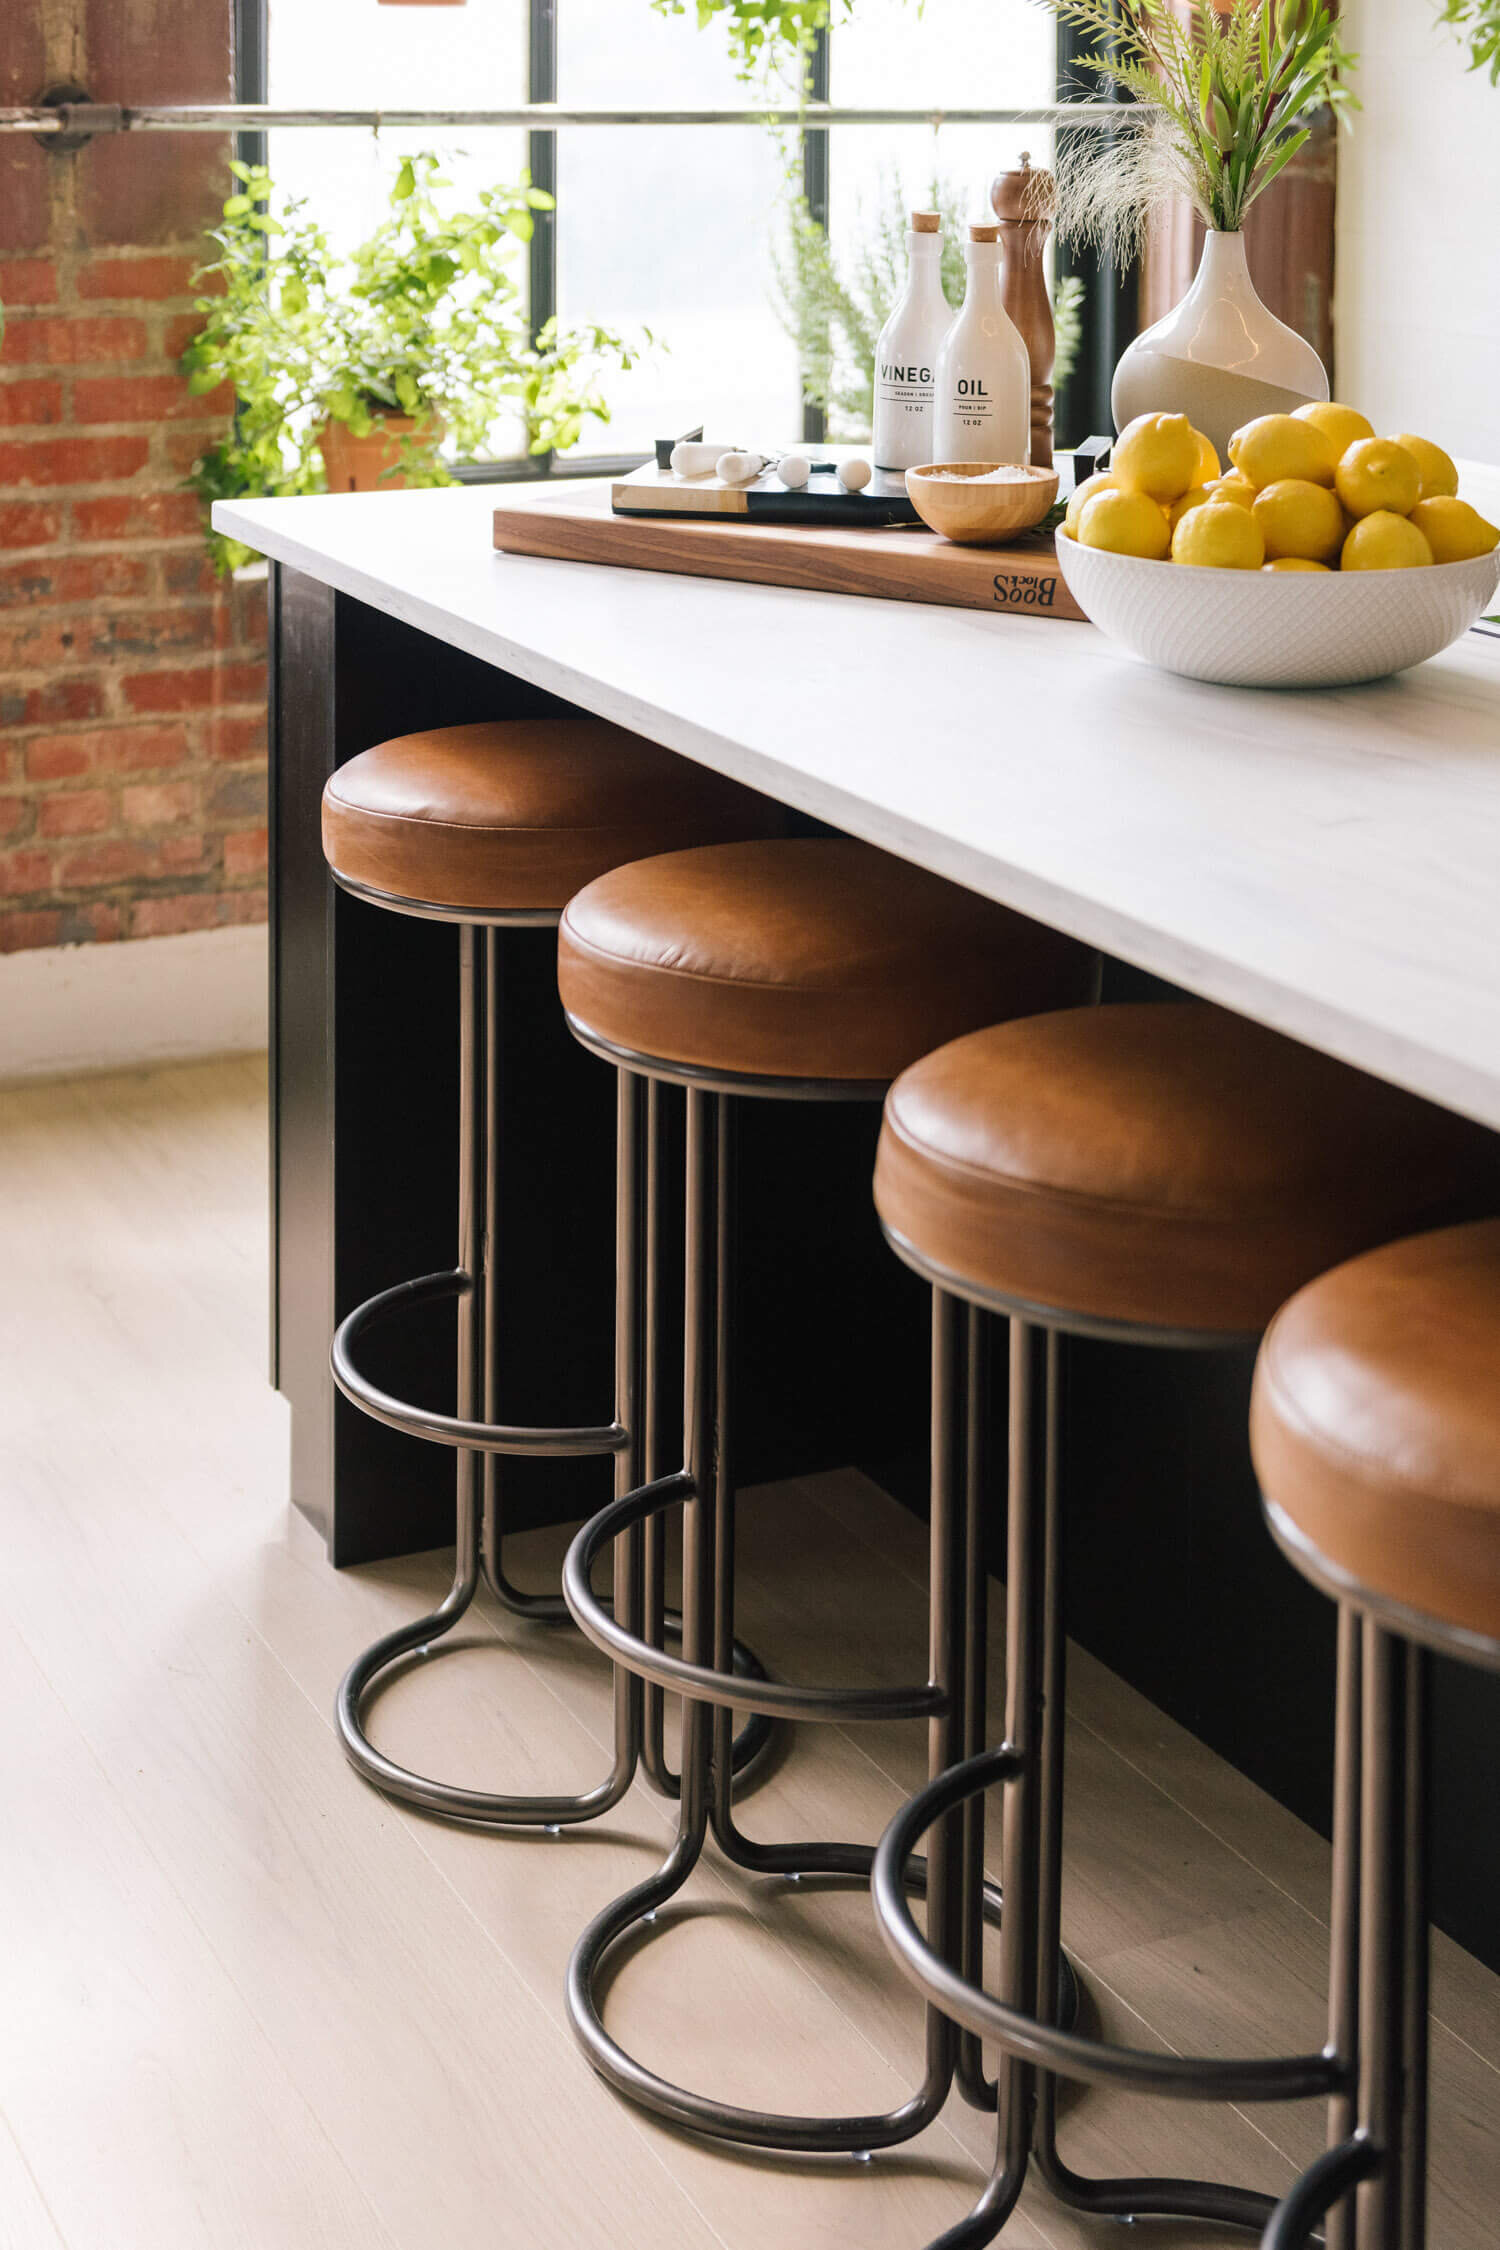 West Elm  Cora Leather Counter Stool : Breakfast Bar Zone | Season 3  loft space of Queer Eye  | Designer:  Bobby Berk